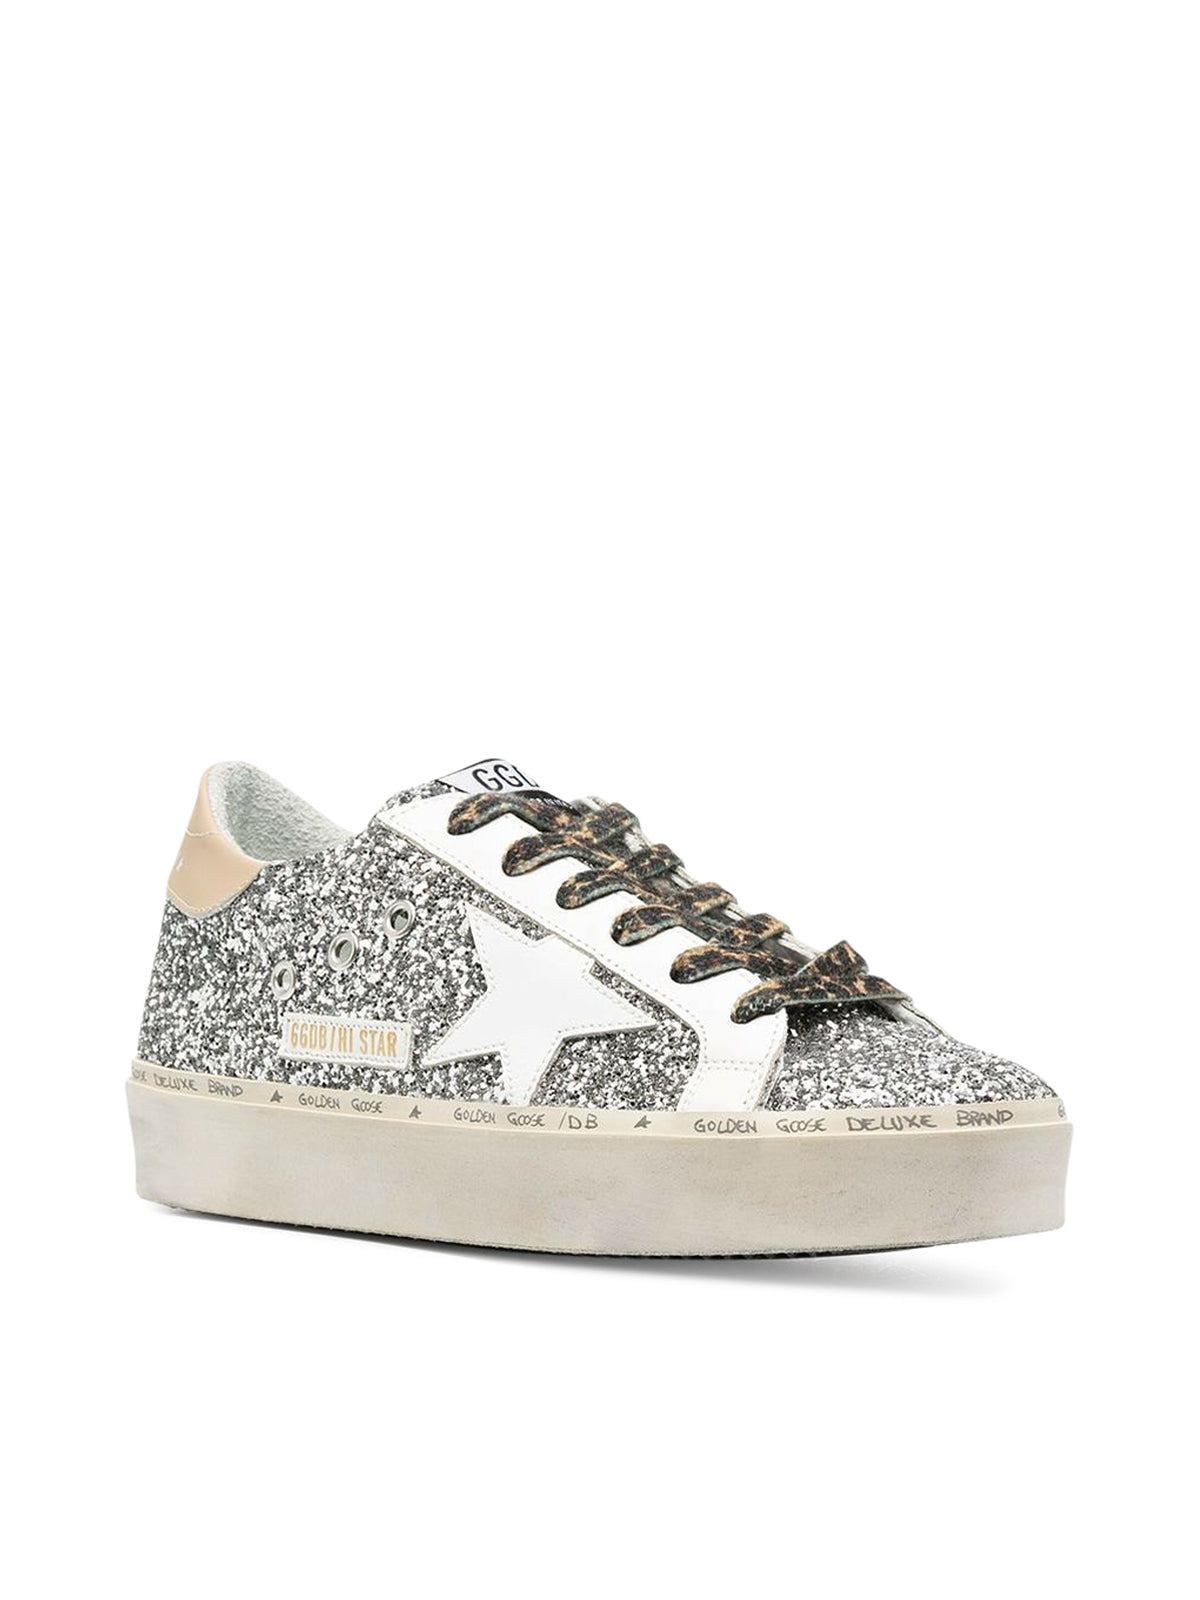 HI STAR GLITTER UPPER LEATHER STAR AND HEEL